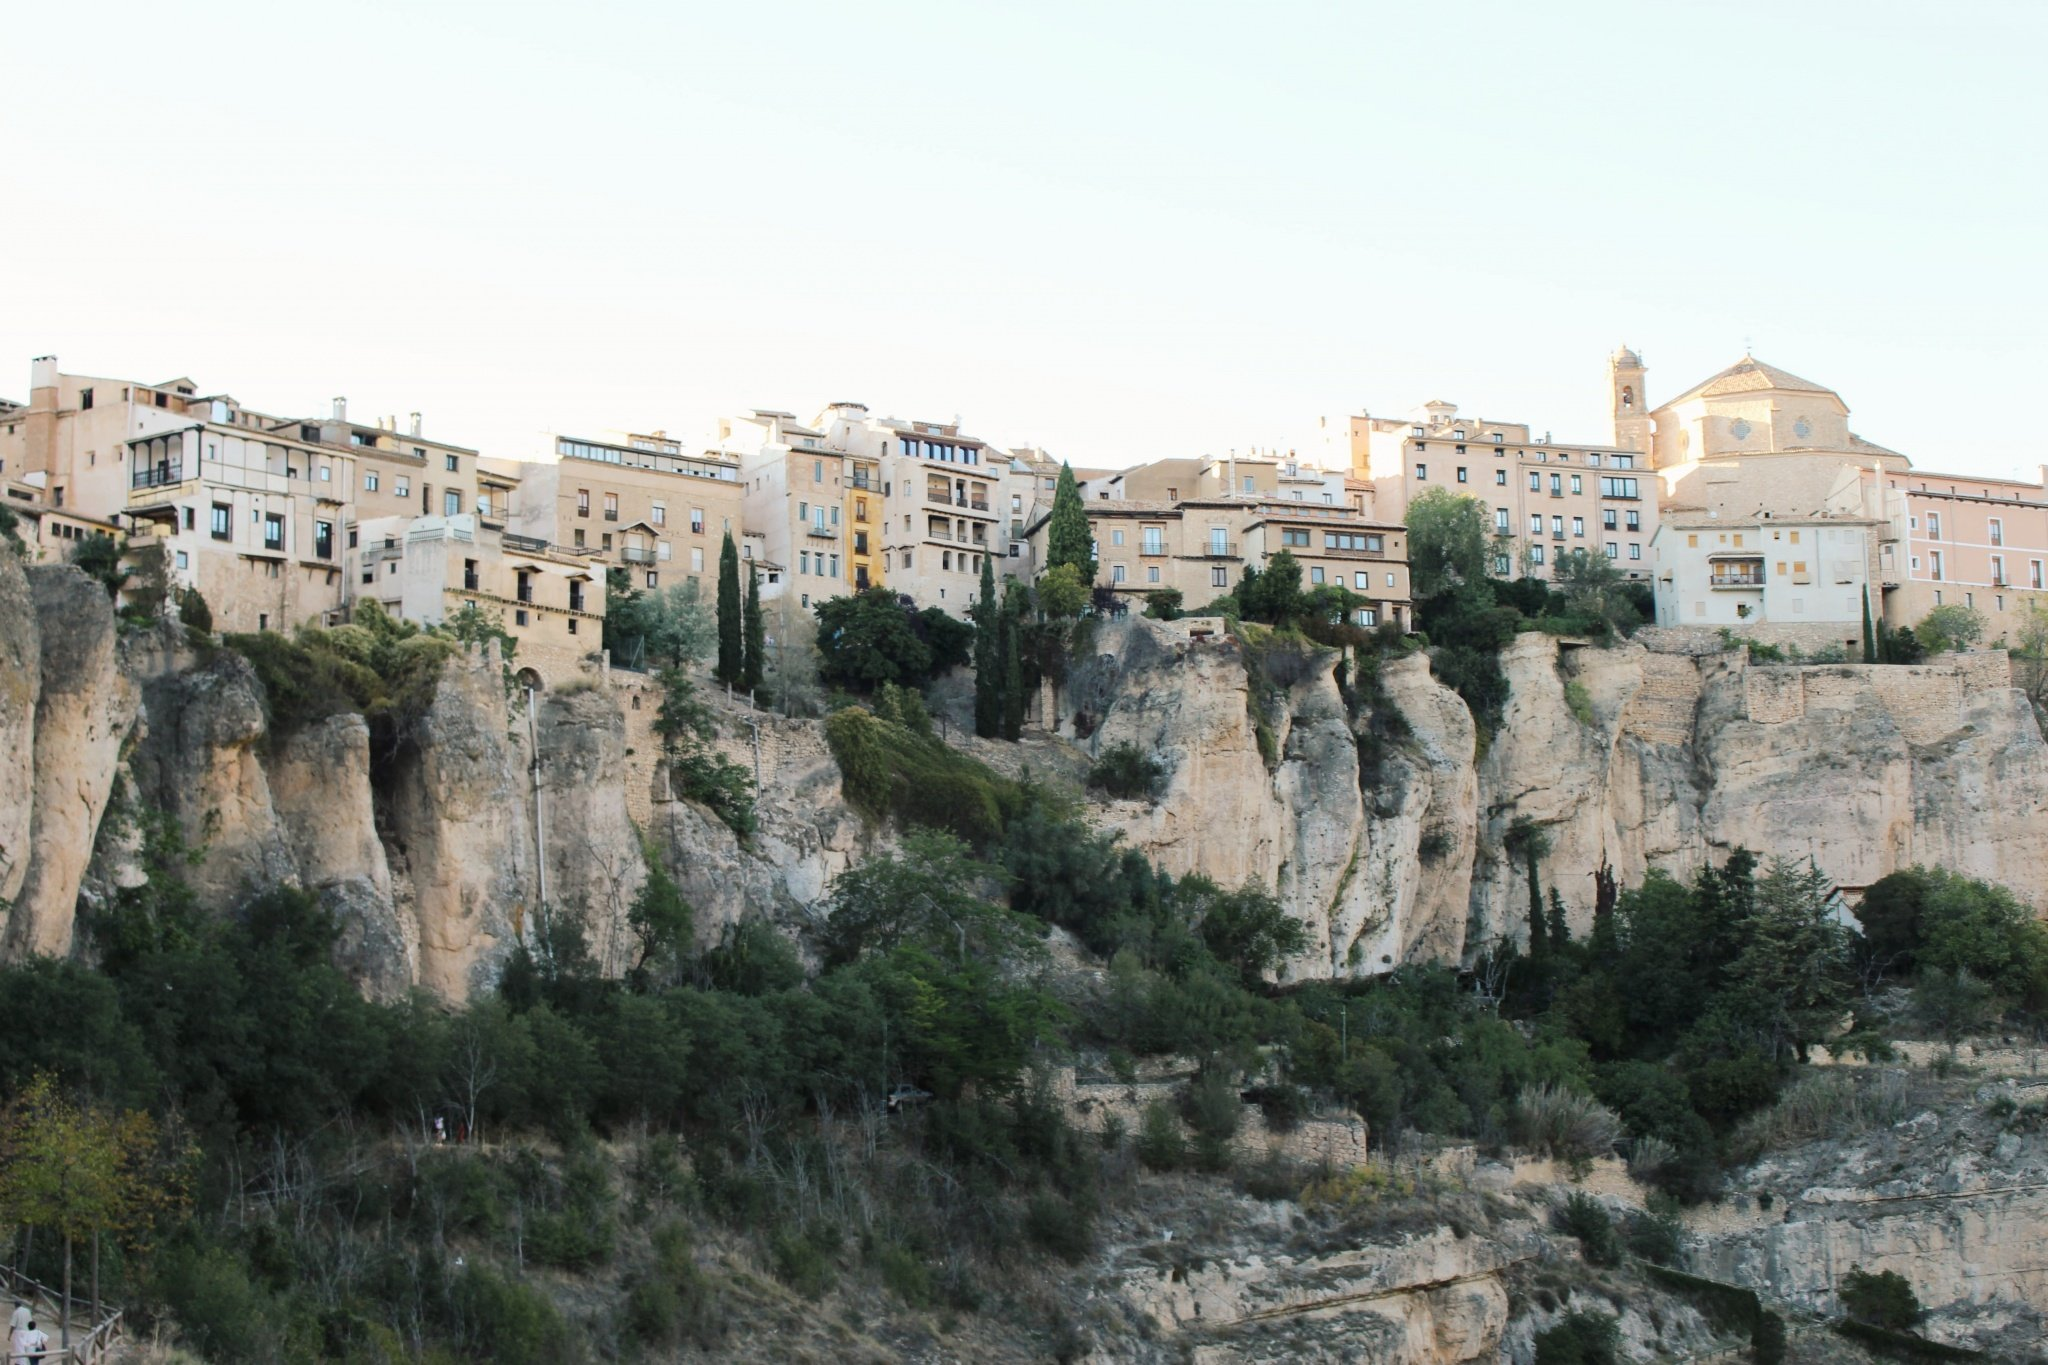 Houses and cliffs in Cuenca, Spain